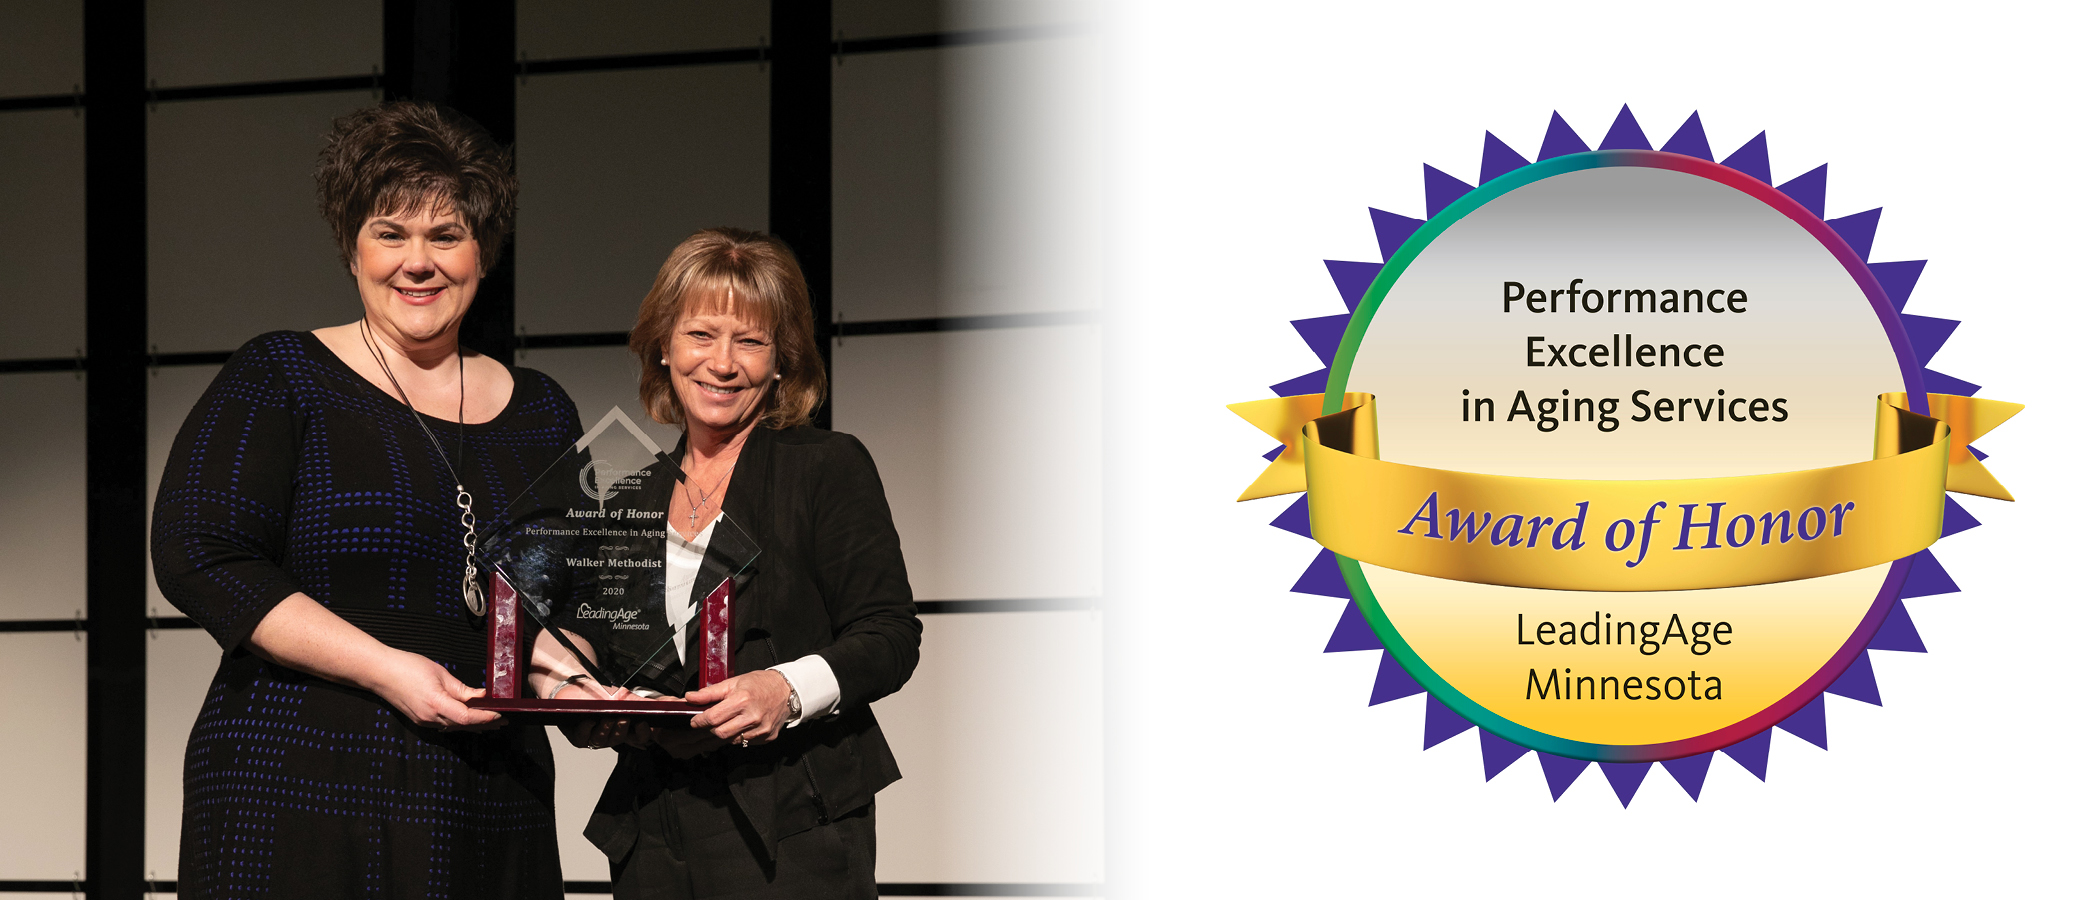 Walker Methodist recognized for achievement in quality and performance excellence